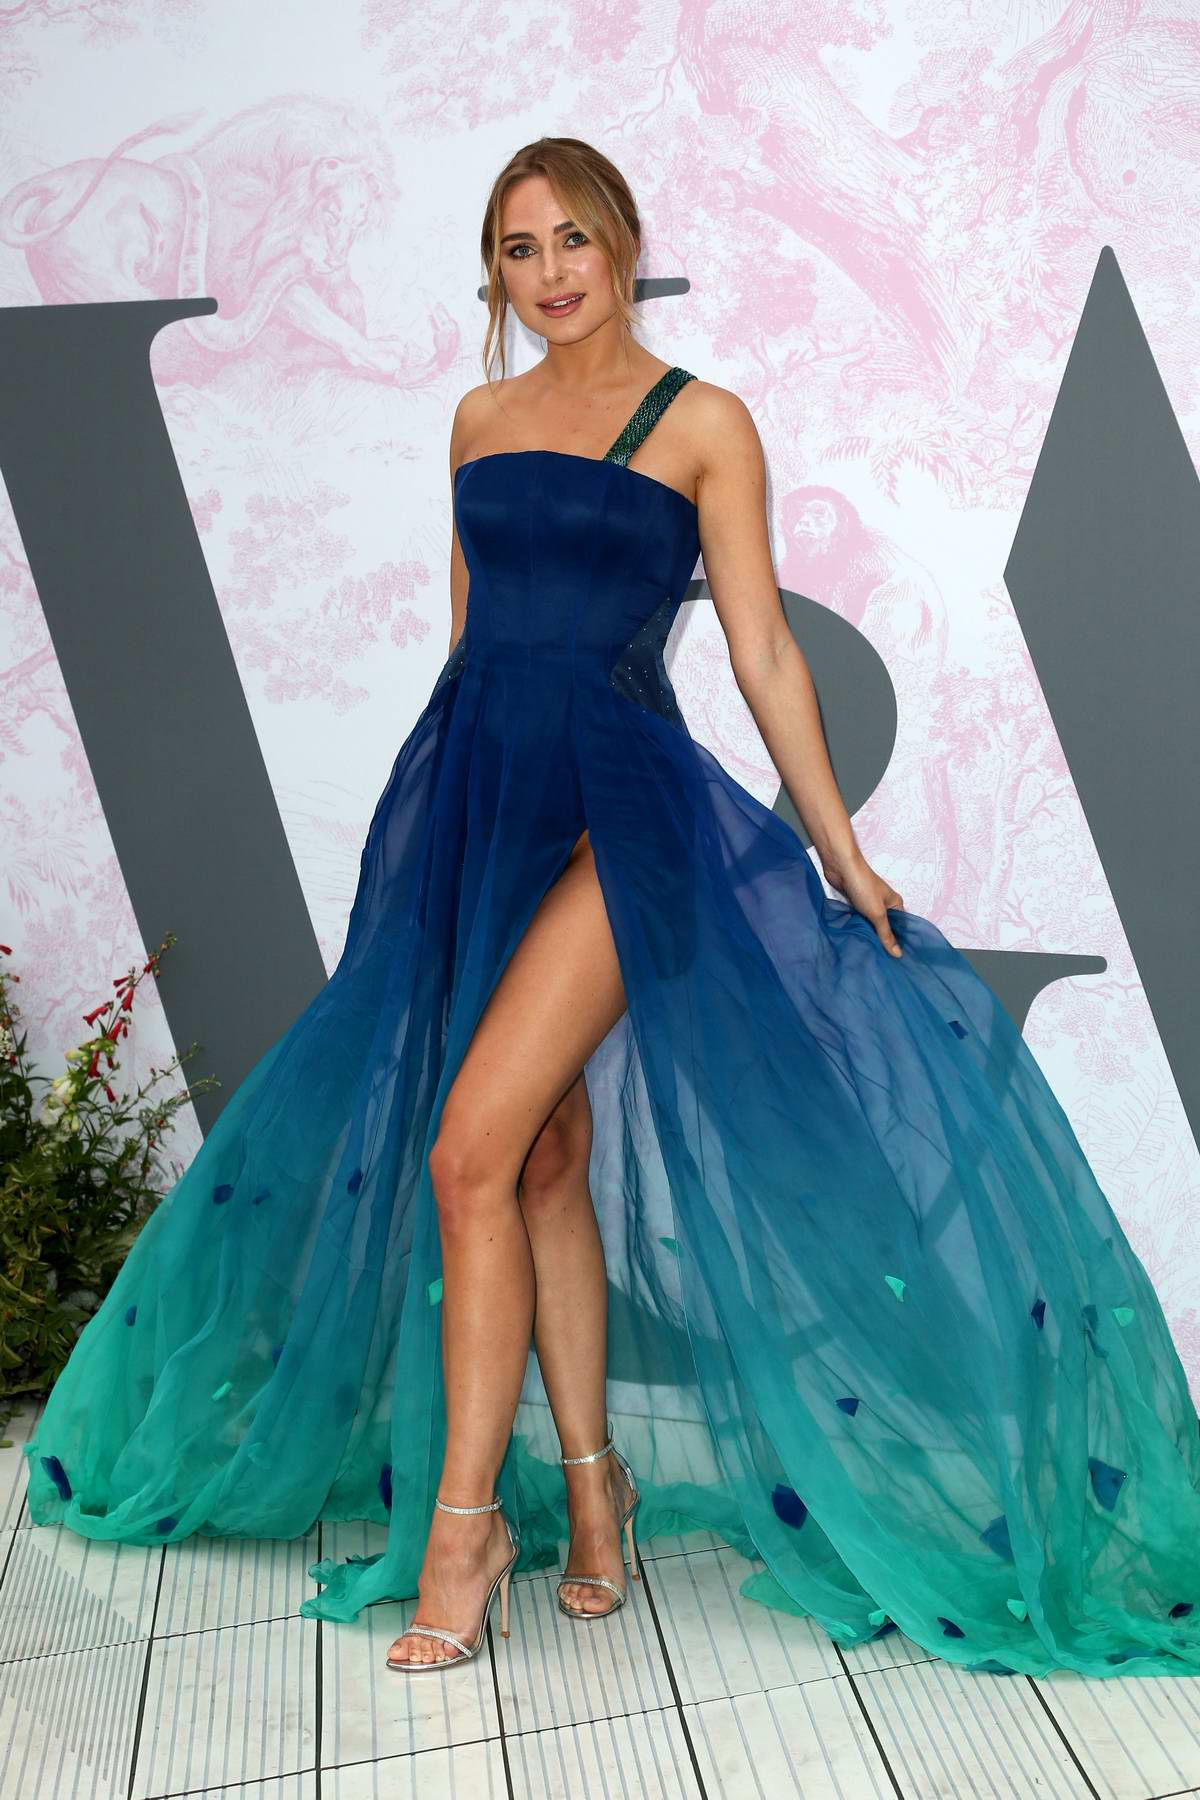 Kimberley Garner attends The V&A Summer Party 2019 in partnership with Dior in London, UK